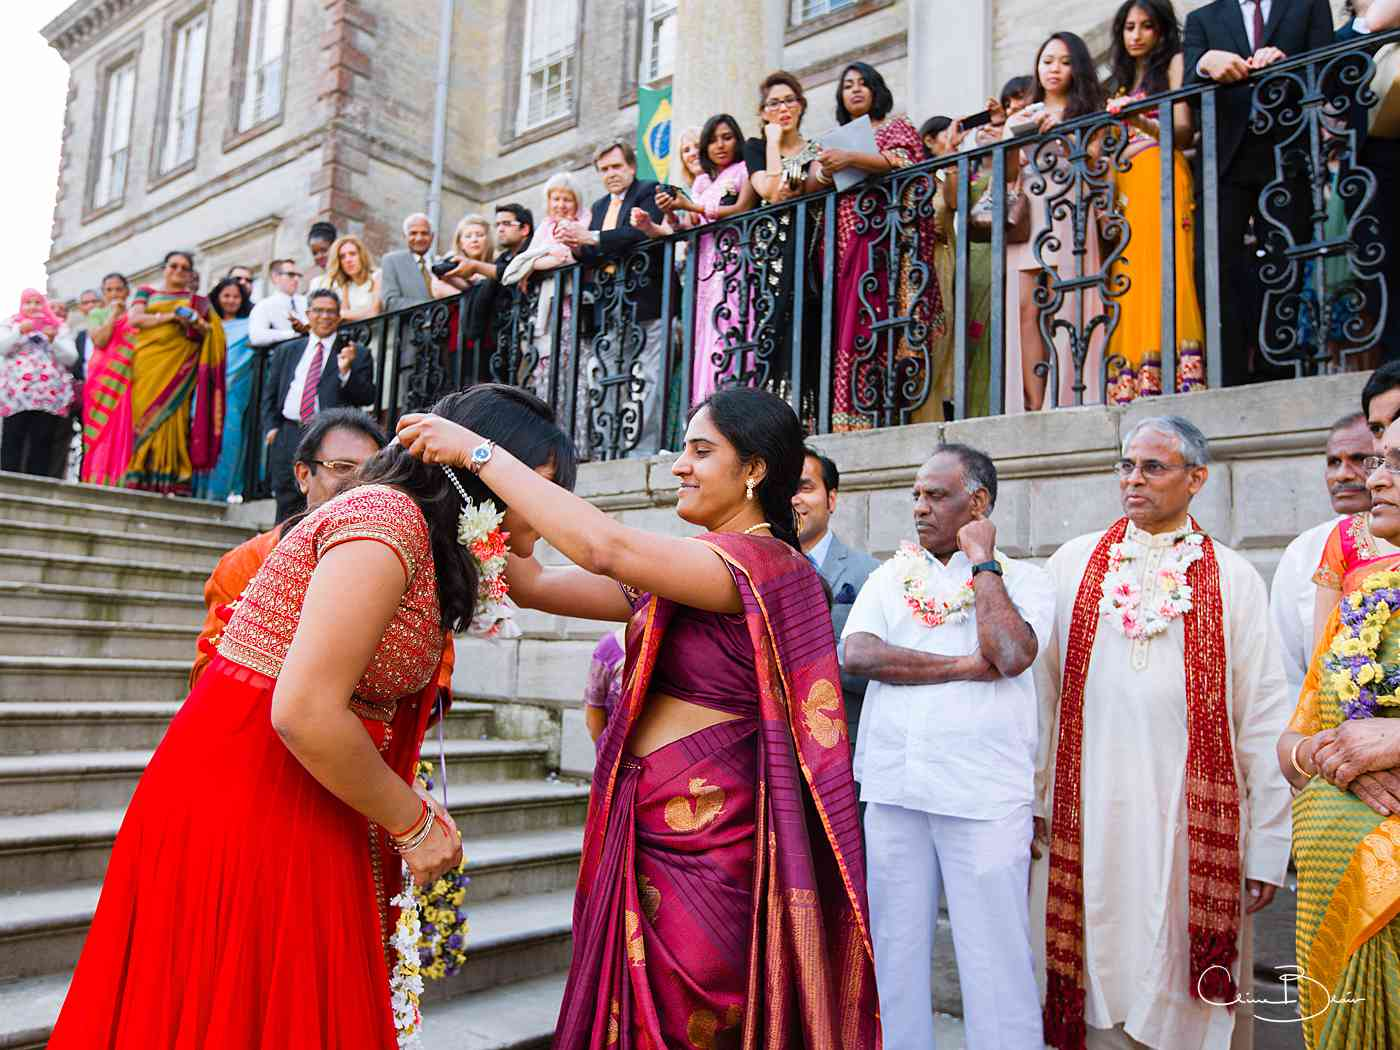 Indian guest receving wedding garland before wedding ceremony